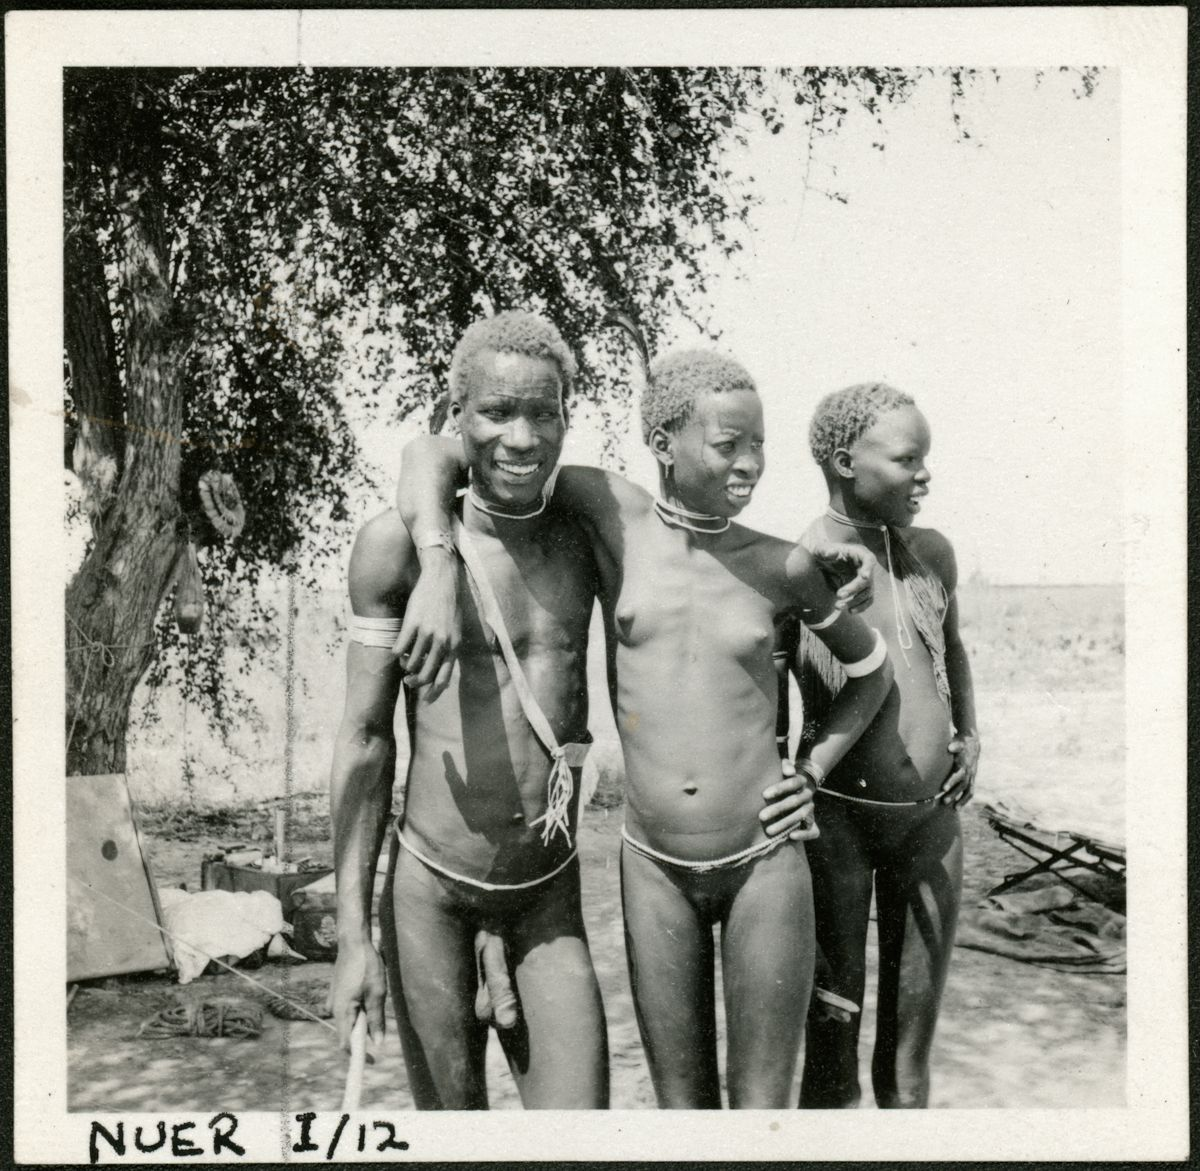 an analysis of the nuer by ee evans pritchard Evans-pritchard argued that the nuer adapt to their  there have been few attempts to replicate rappaport's analysis of  evans-pritchard ee 1940 the nuer:.